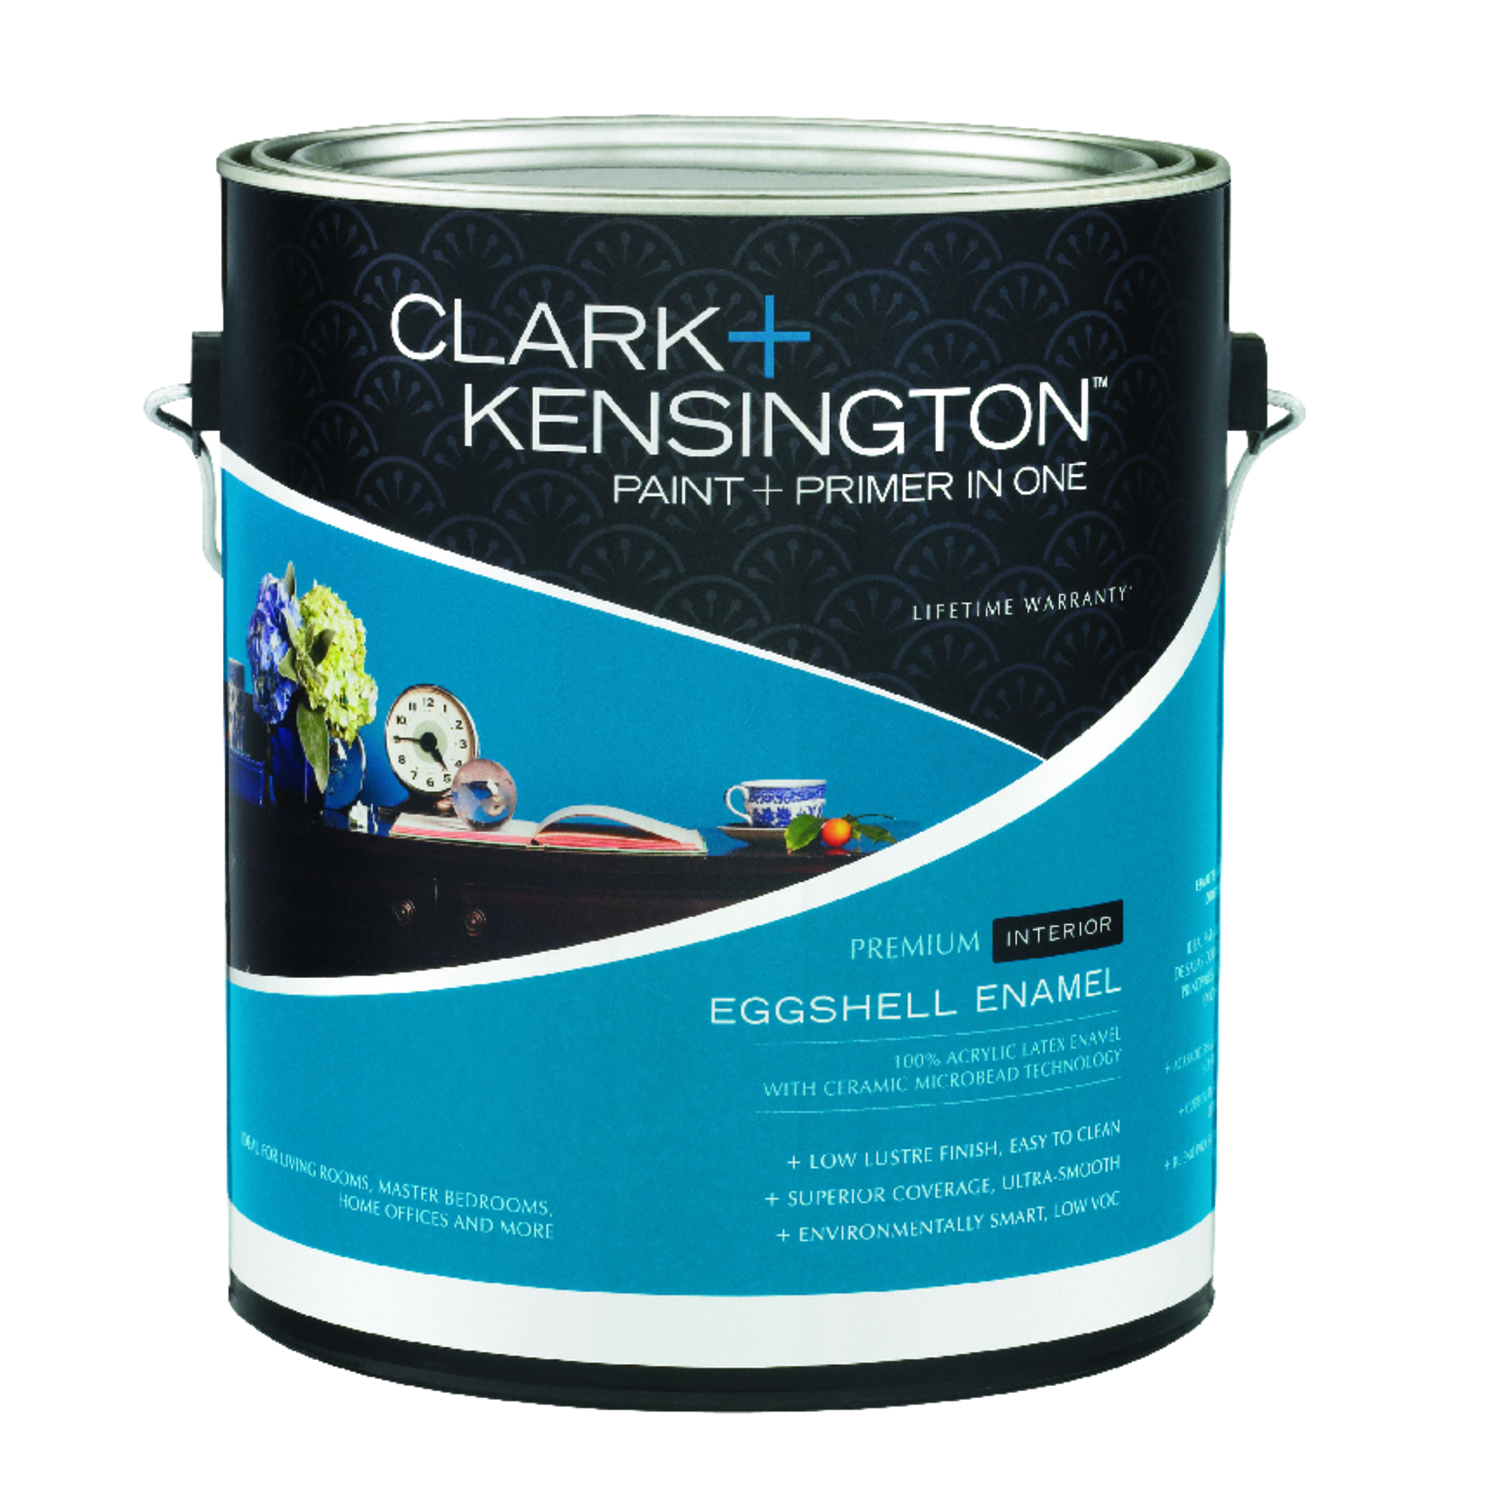 Clark+Kensington  Eggshell  Designer White  Acylic Latex  Paint and Primer  1 gal.